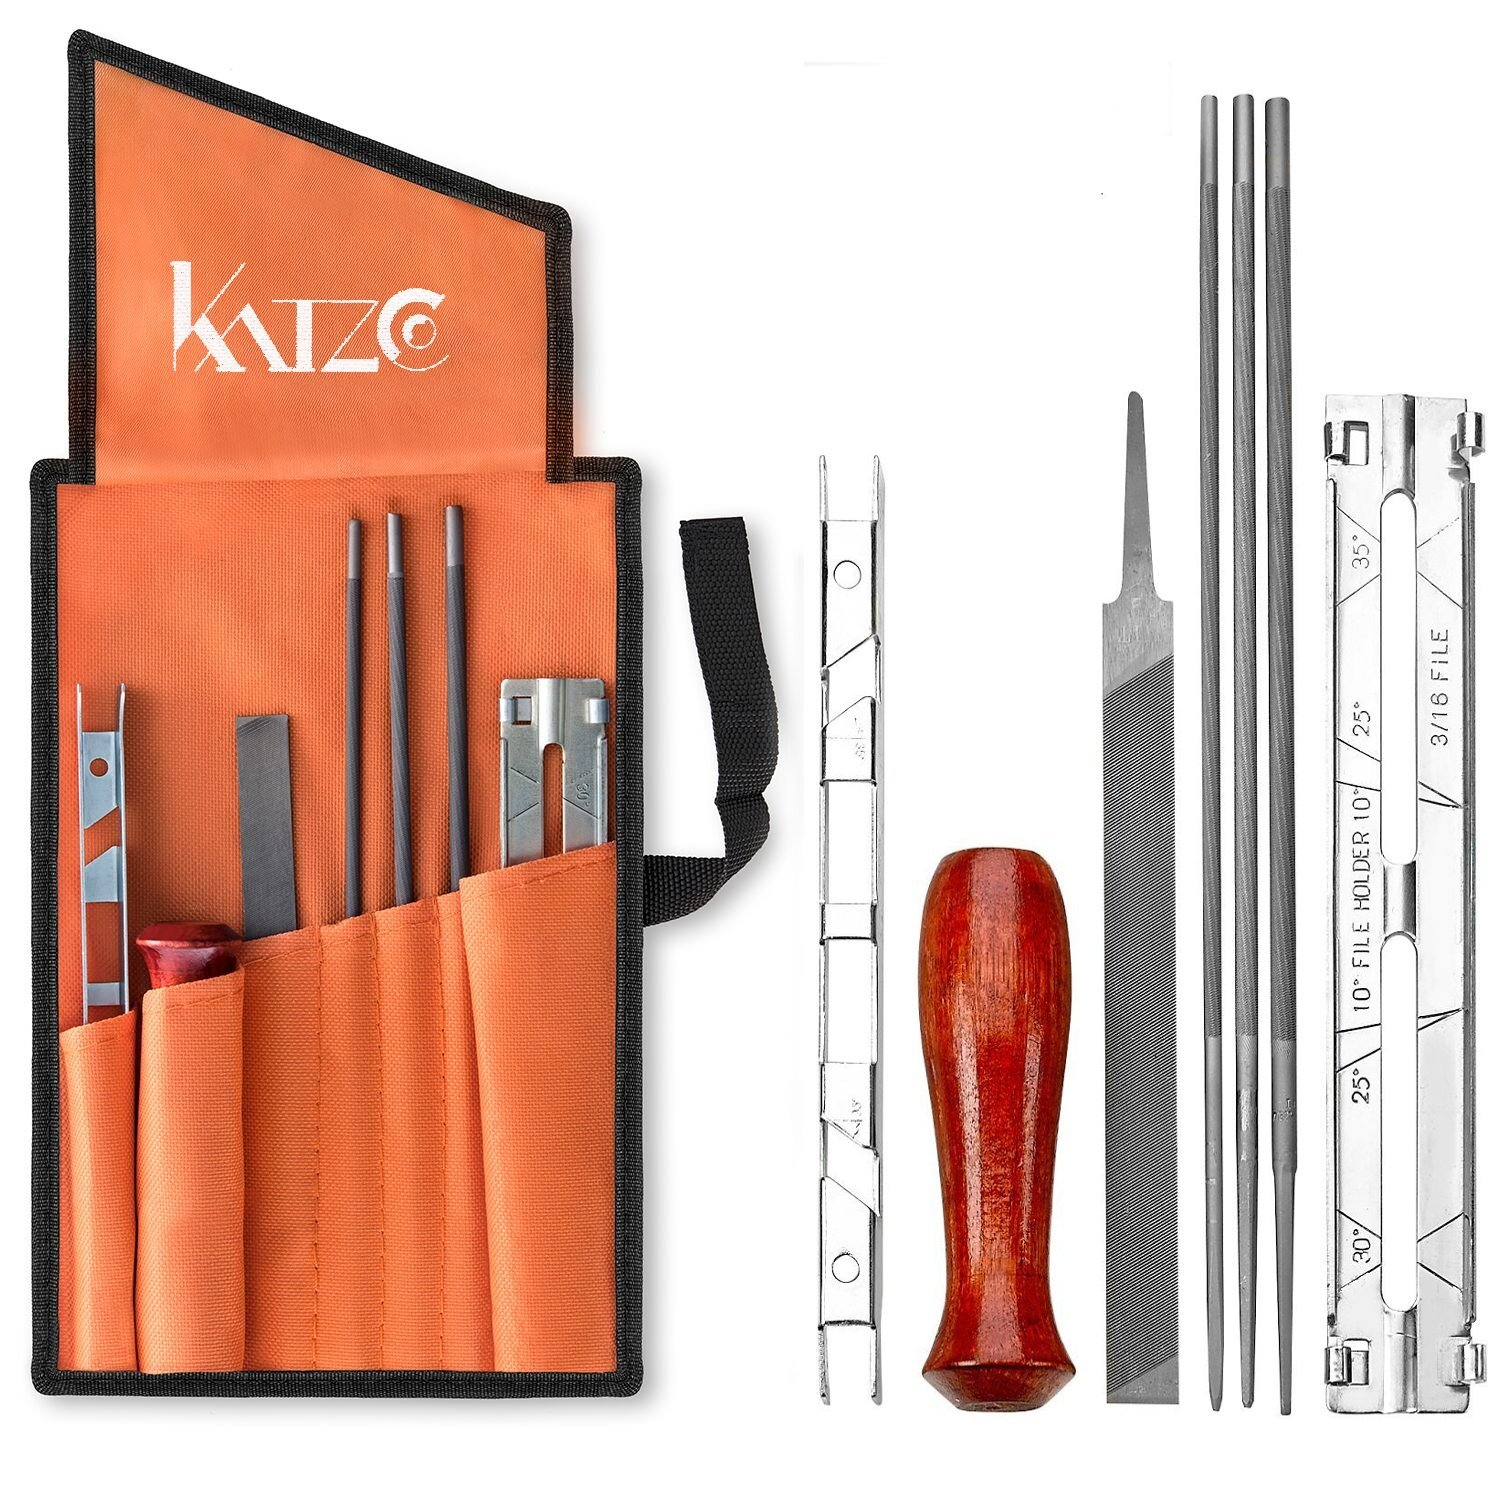 Katzco Chainsaw Sharpener File Kit - Contains 5/32, 3/16, and 7/32 Inch Files, Wood Handle, Depth Gauge, Filing Guide, and Tool Pouch - for Sharpening and Filing Chainsaws and Other Blades by Katzco